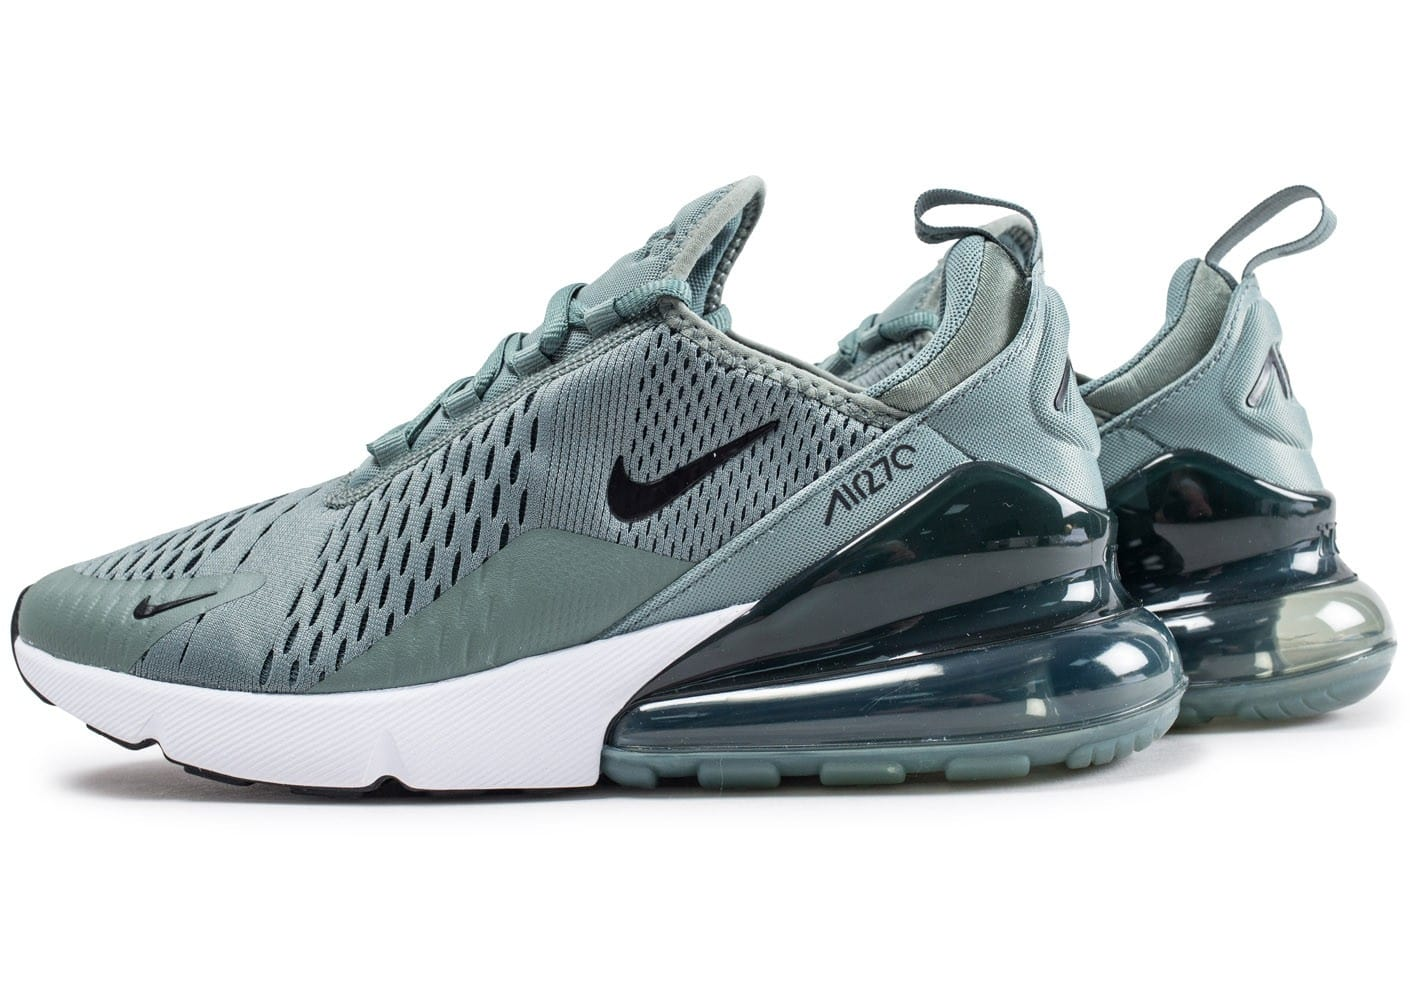 nike air max 270 vert argile chaussures baskets homme chausport. Black Bedroom Furniture Sets. Home Design Ideas